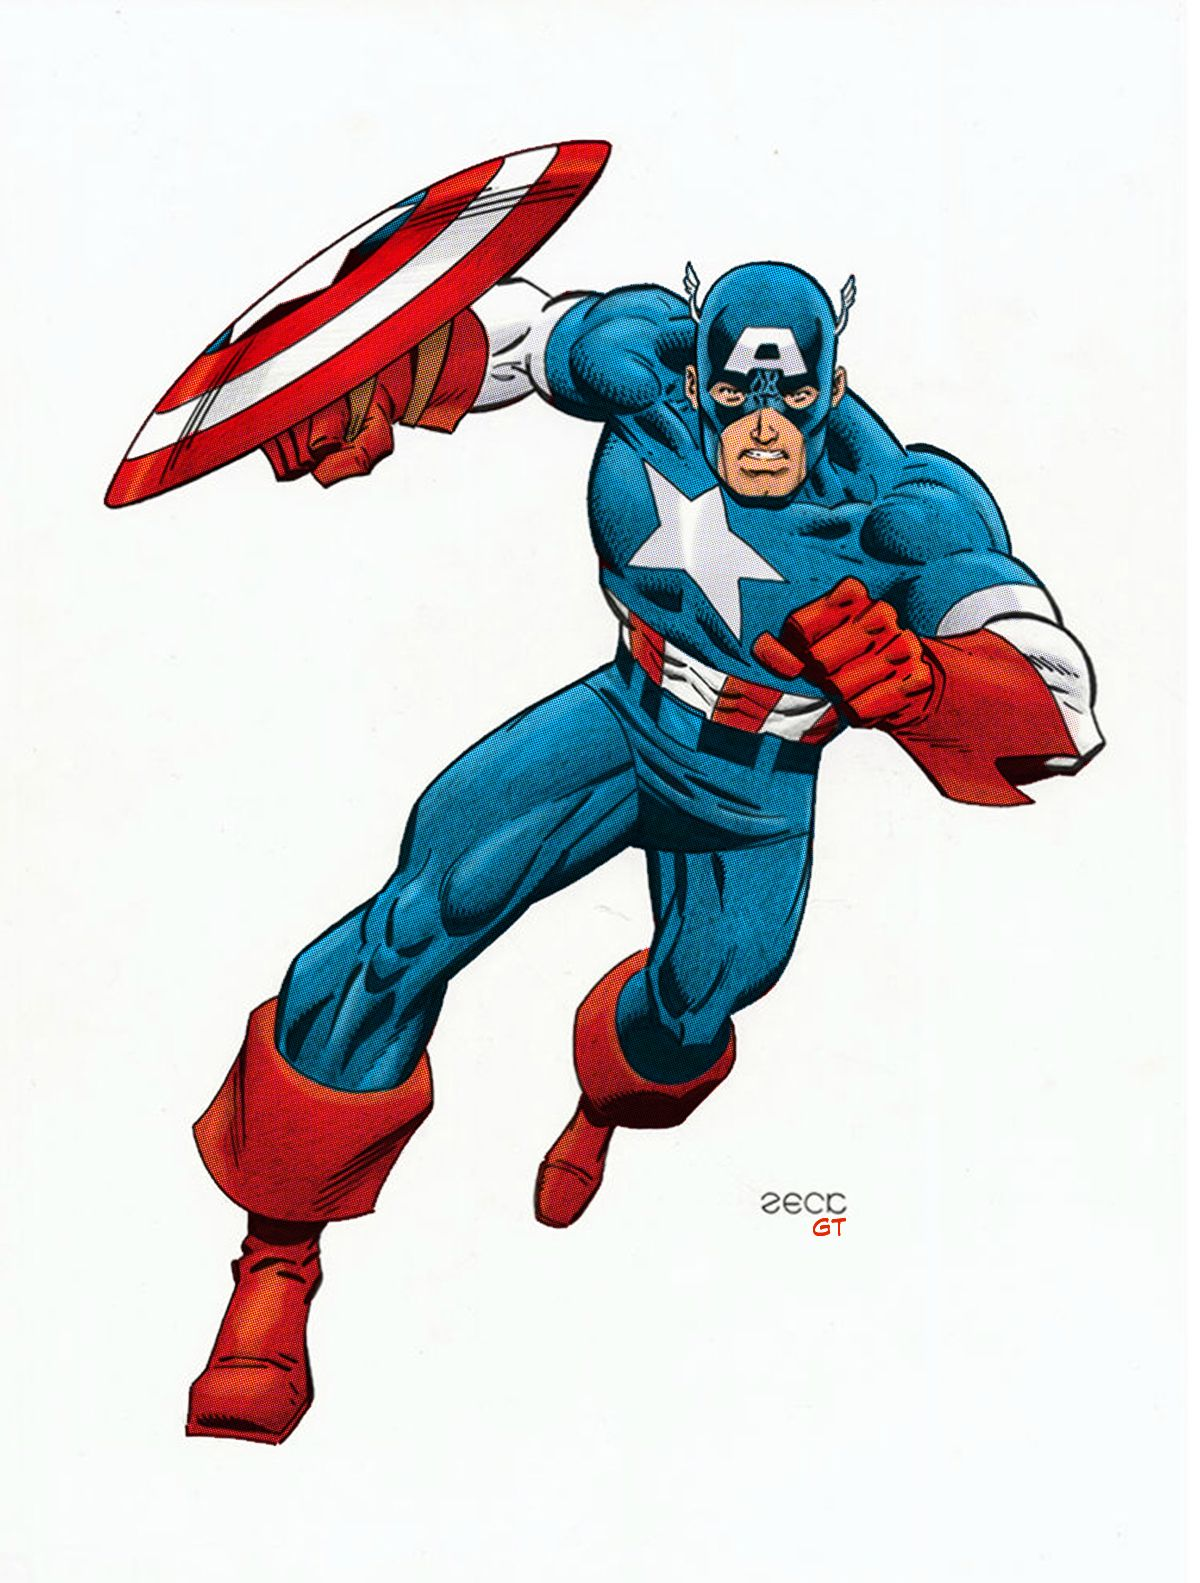 Marvel Malvorlagen Marvel Superhero The Marvel Super: Captain America Illustration - Google Search